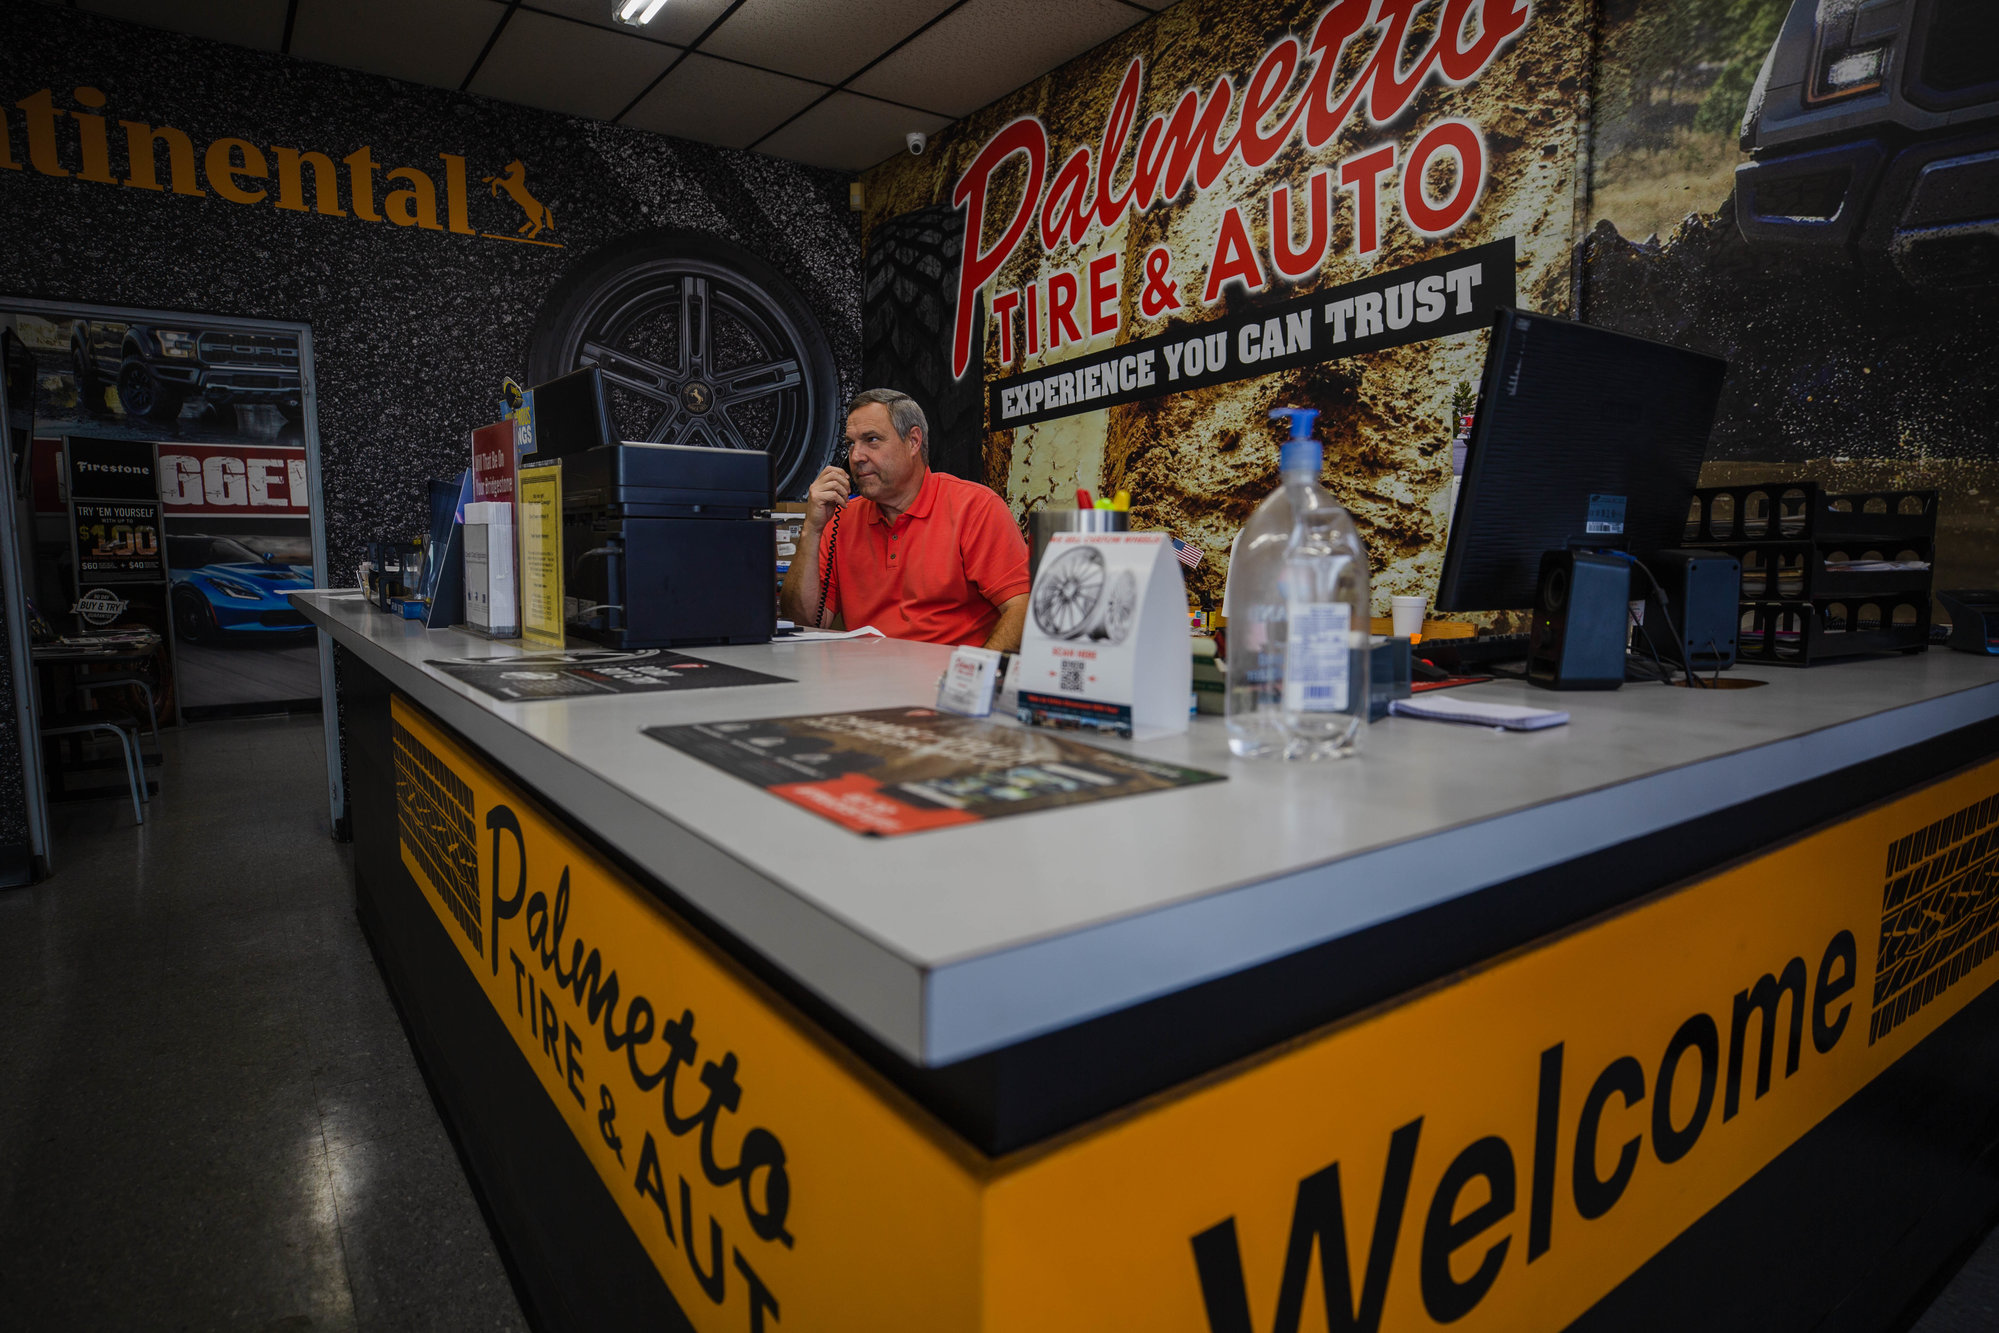 Palmetto Tire and Auto owner Philip Marlowe sits behind the desk in the store's main office area on Thursday. The tire and auto repair shop has received an outpouring of community support since an Oct. 21 shooting incident, he said.